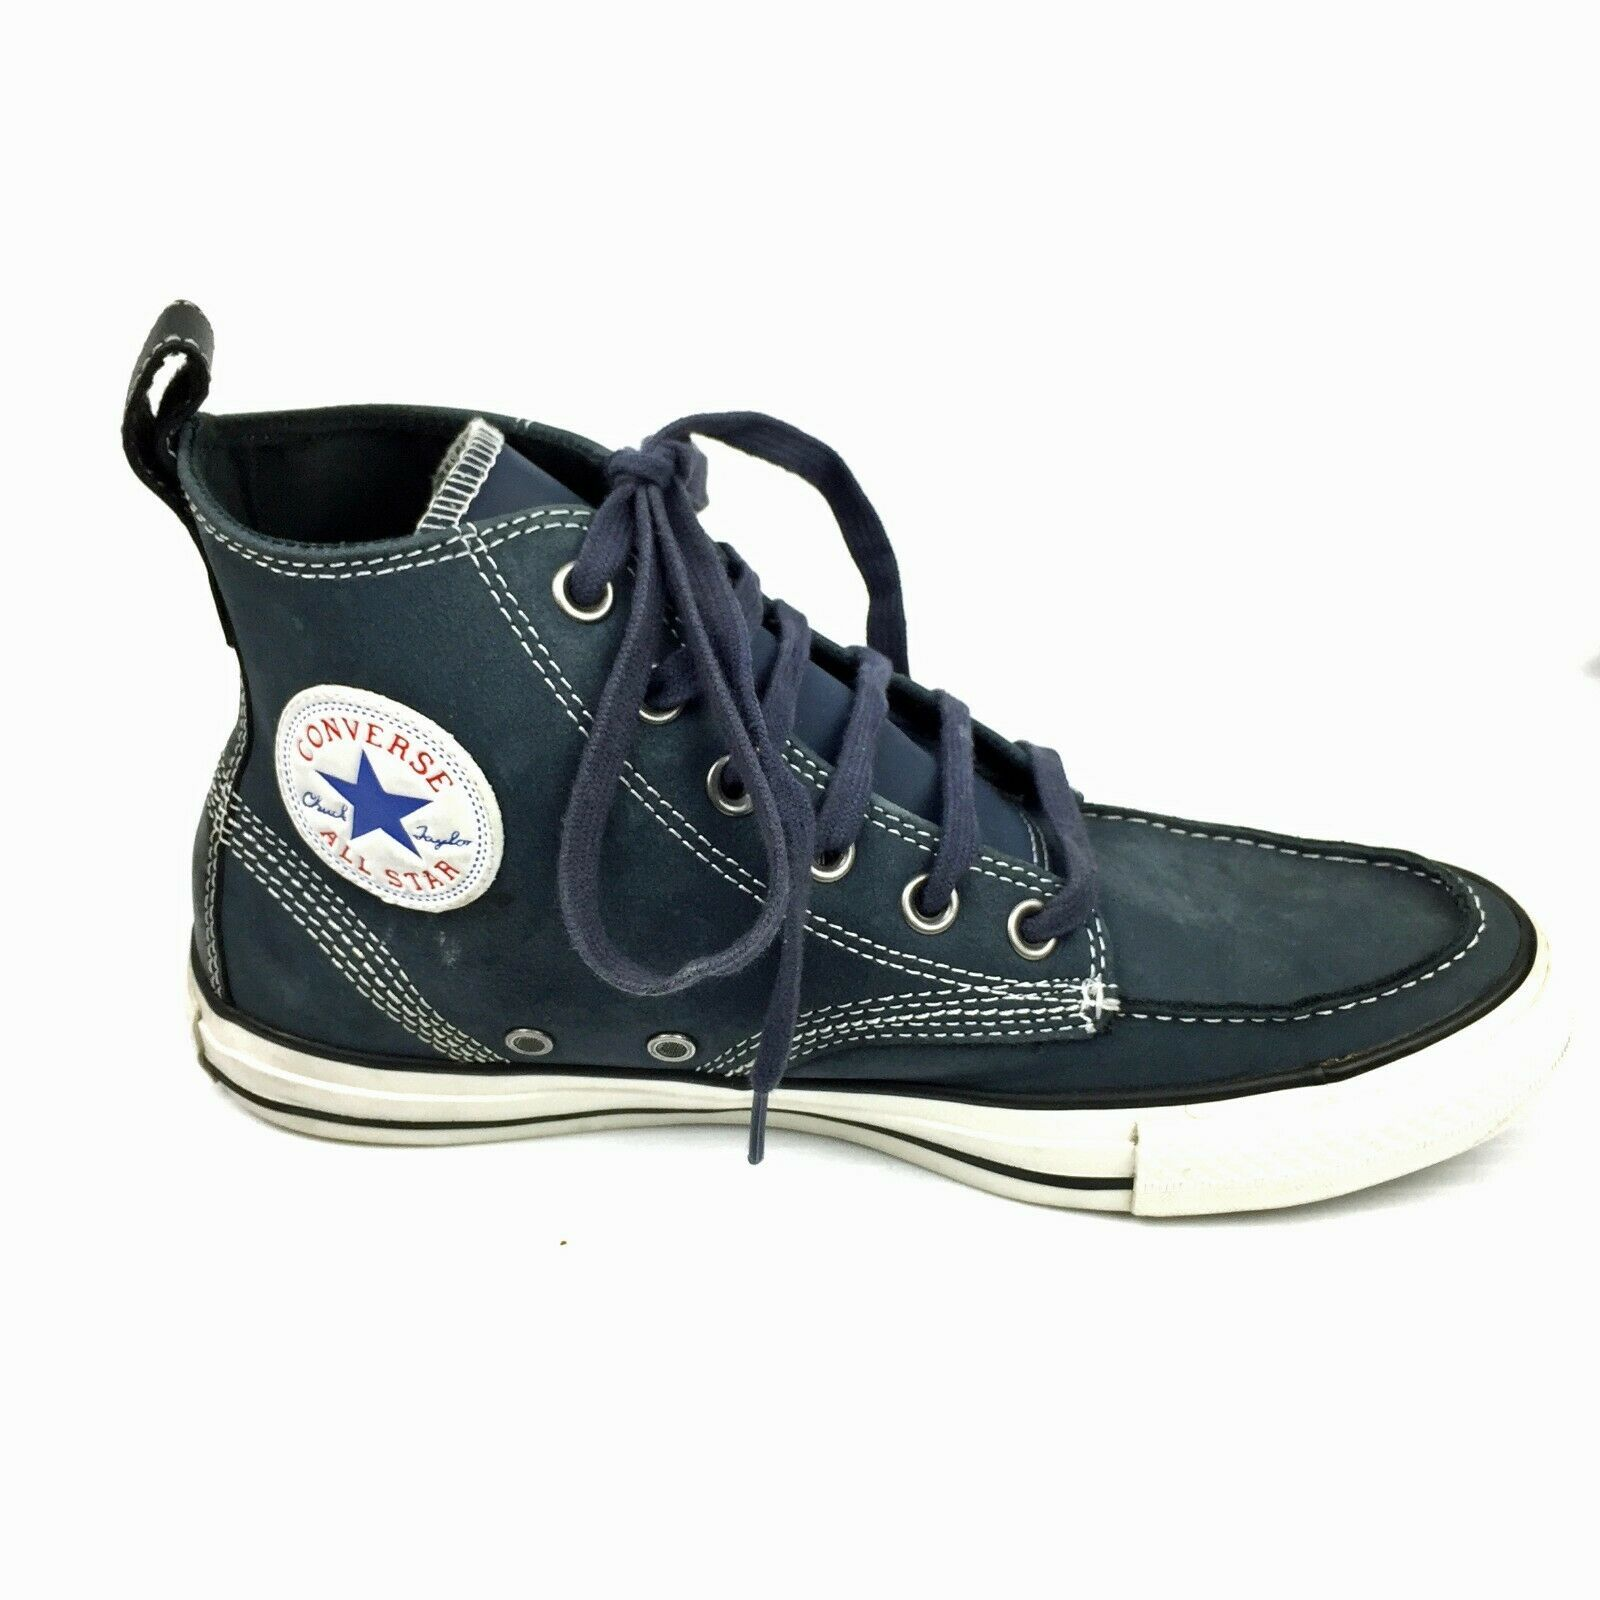 CONVERSE CTAS 125646C Navy Blue Leather High Top Boat Shoes Sneakers Sz 7D